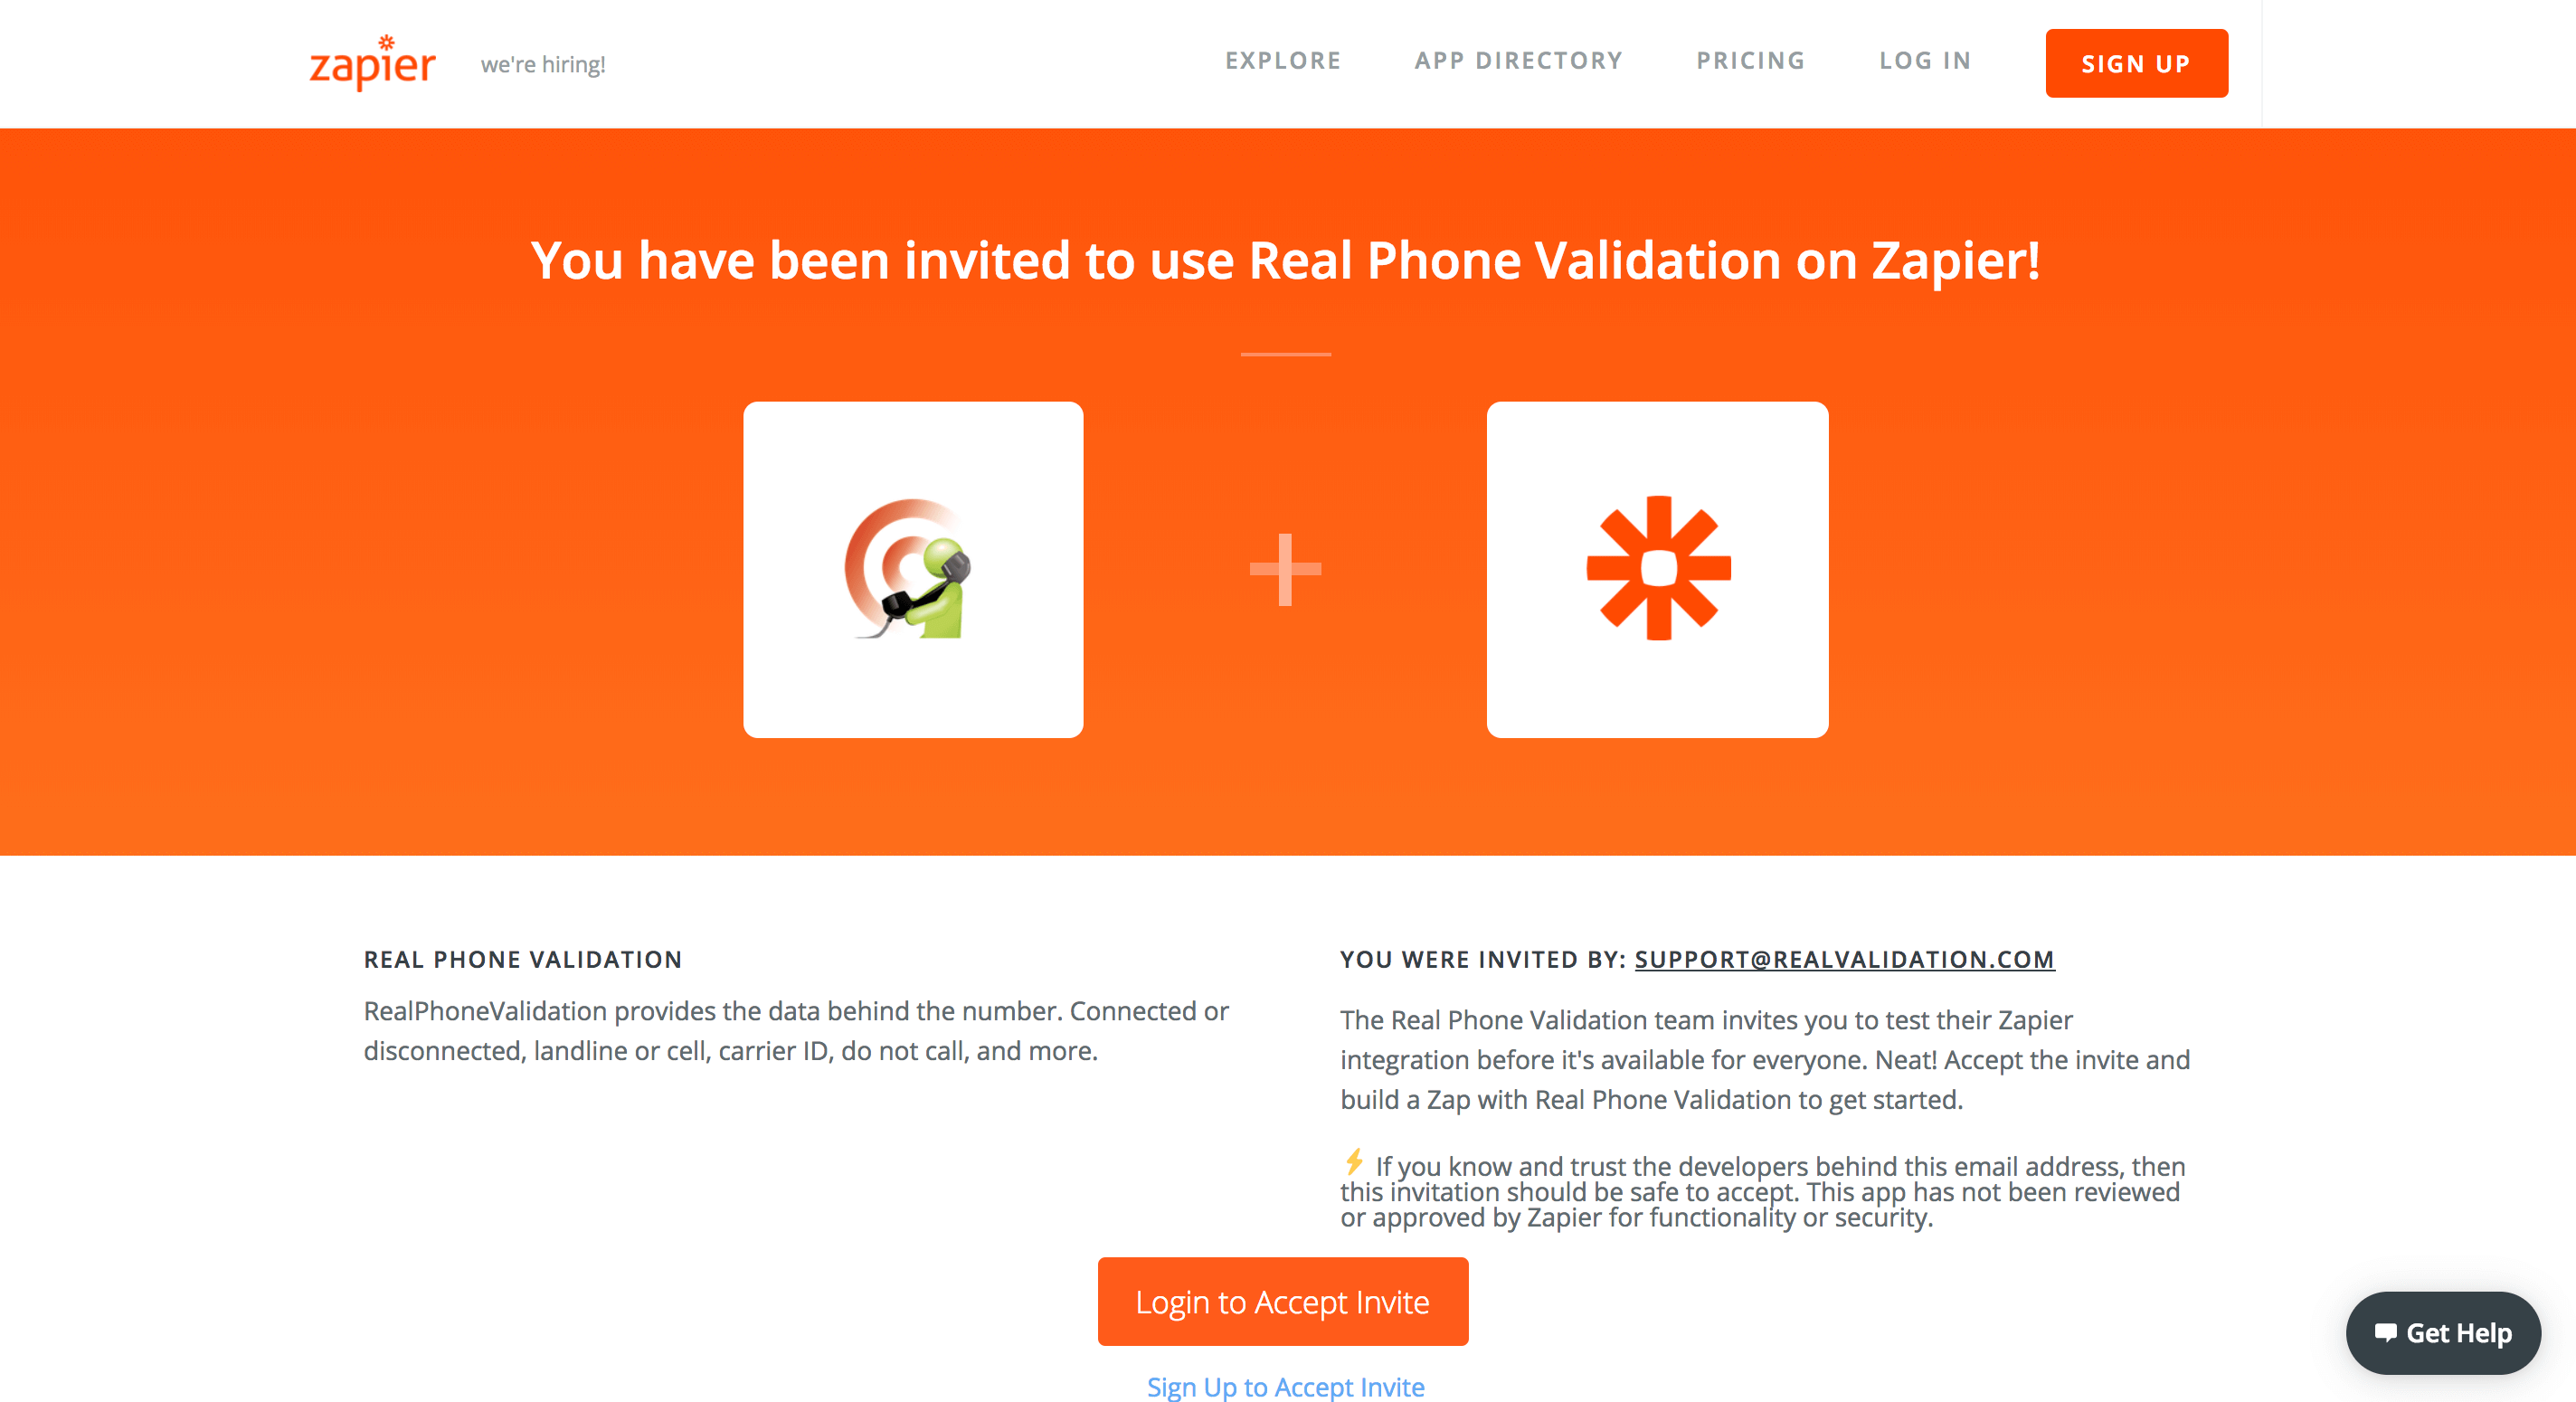 Use Zapier to intergrate phone validation into other apps